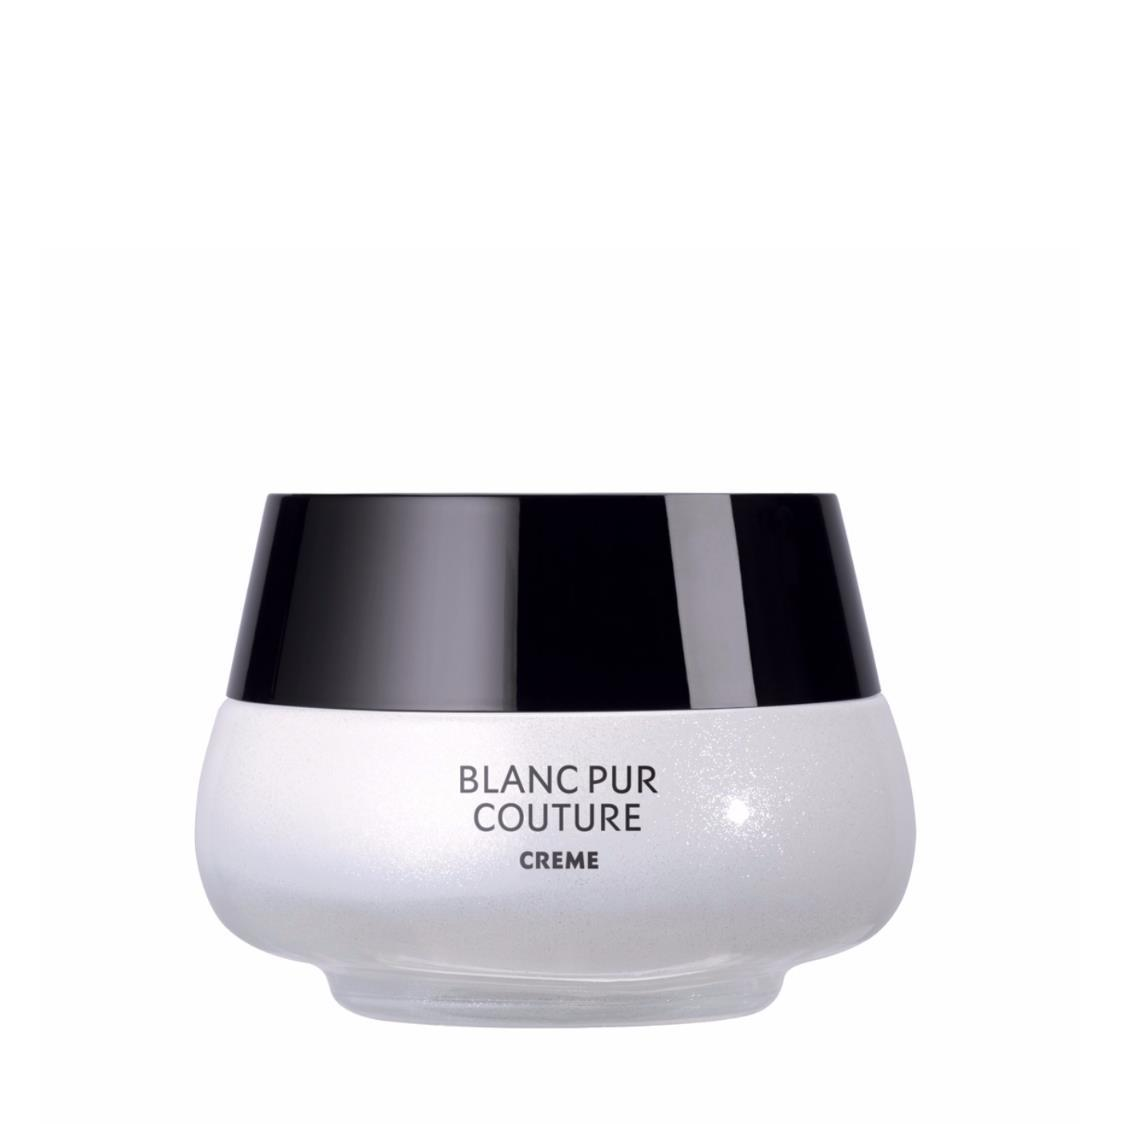 YSL Blanc Pur Couture Crme